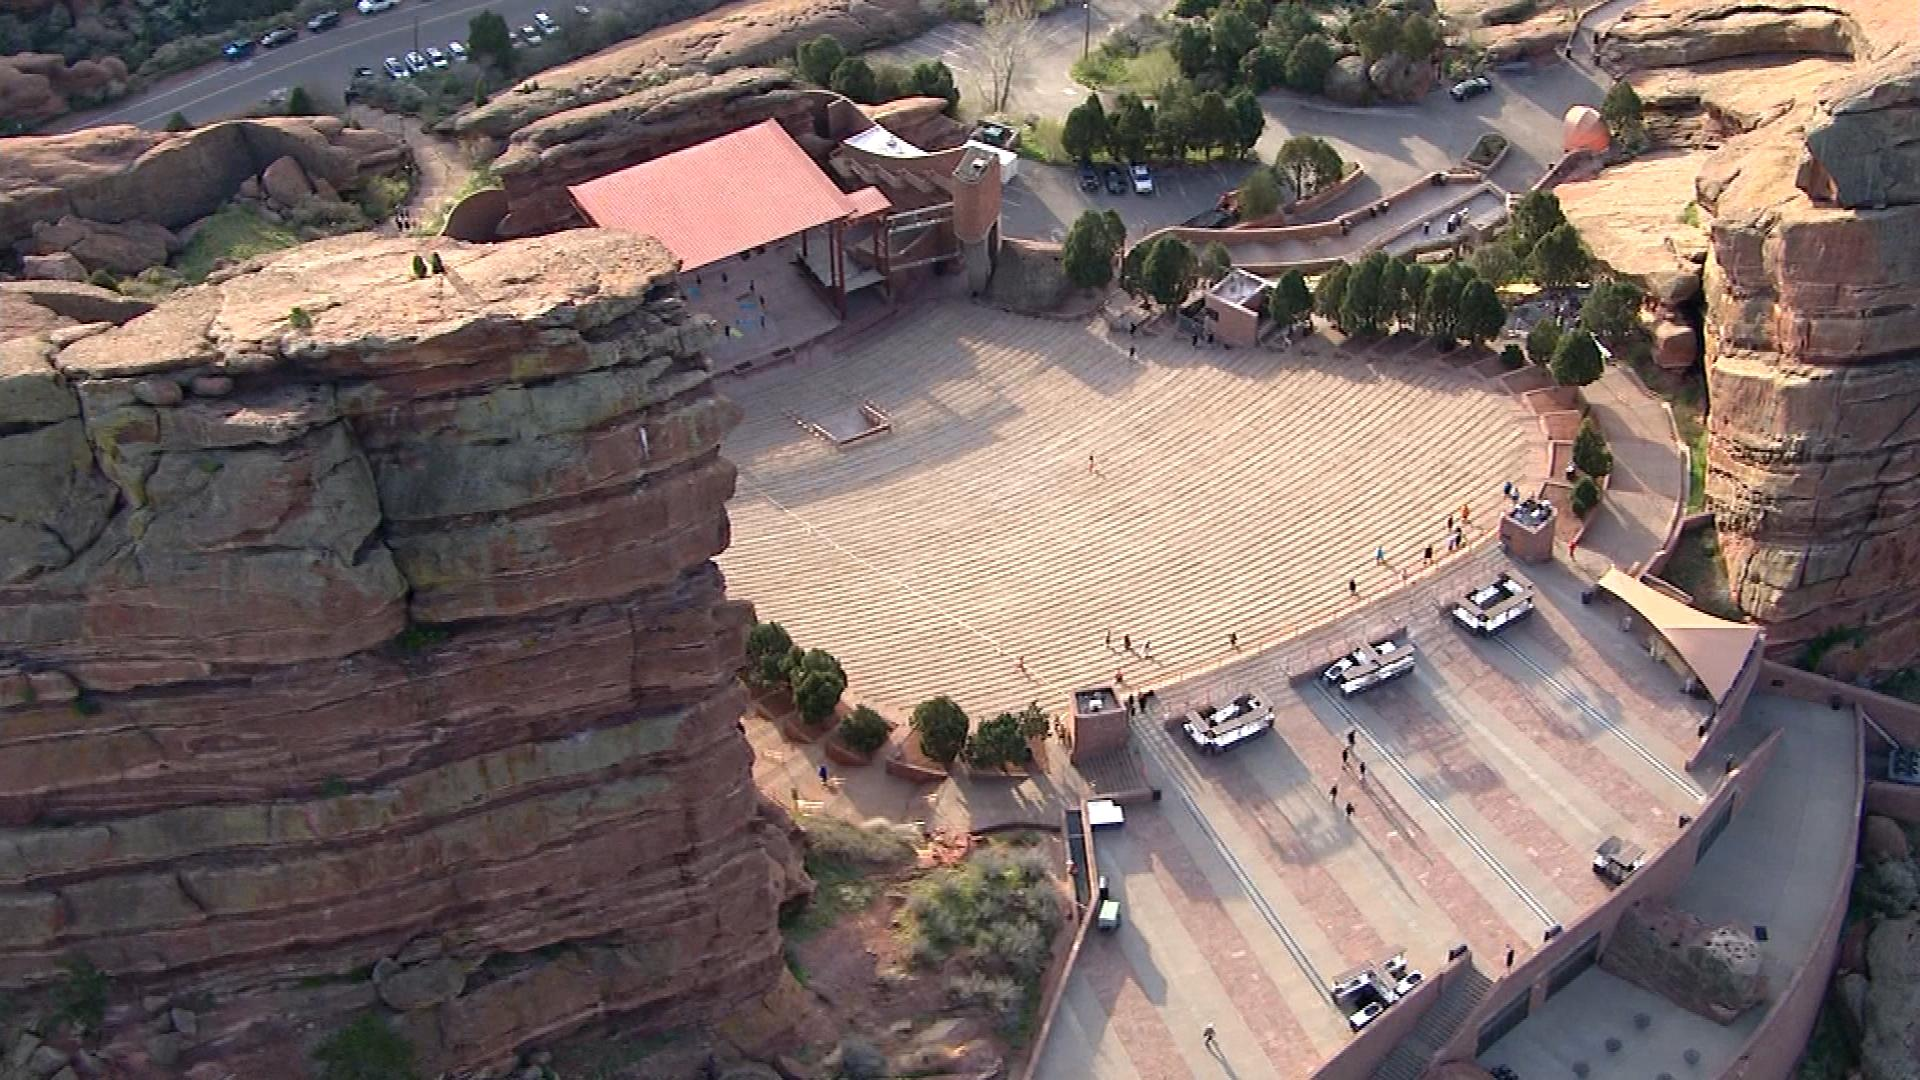 Red Rocks Amphitheater (credit: CBS)